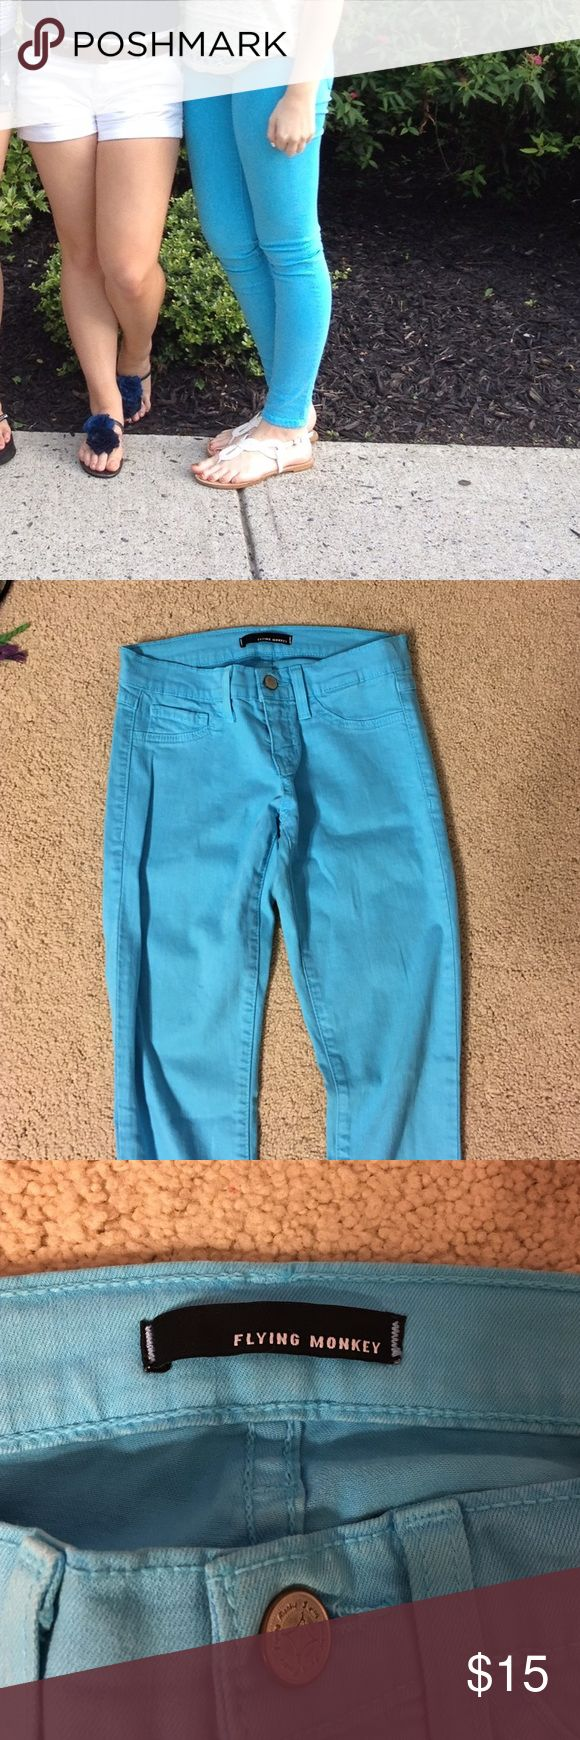 Light blue skinny jeans Light blue skinny jeans, good condition, flying monkey brand, size 3 (runs small) purchased from a local boutique in my area that is very nice! flying monkey Jeans Skinny